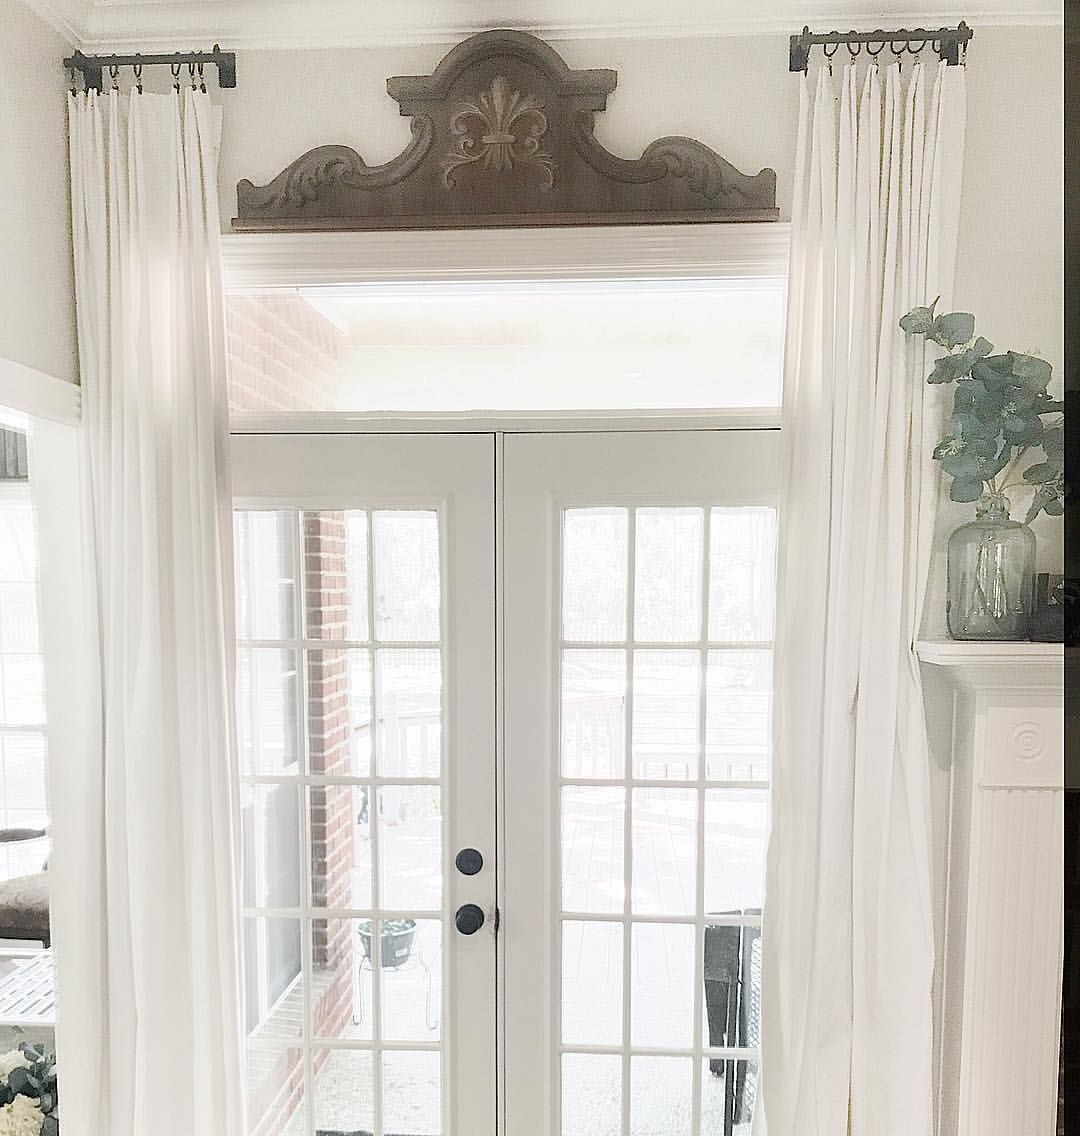 Diy Curtain Rods And Drop Cloth Curtains For French Doors Add A